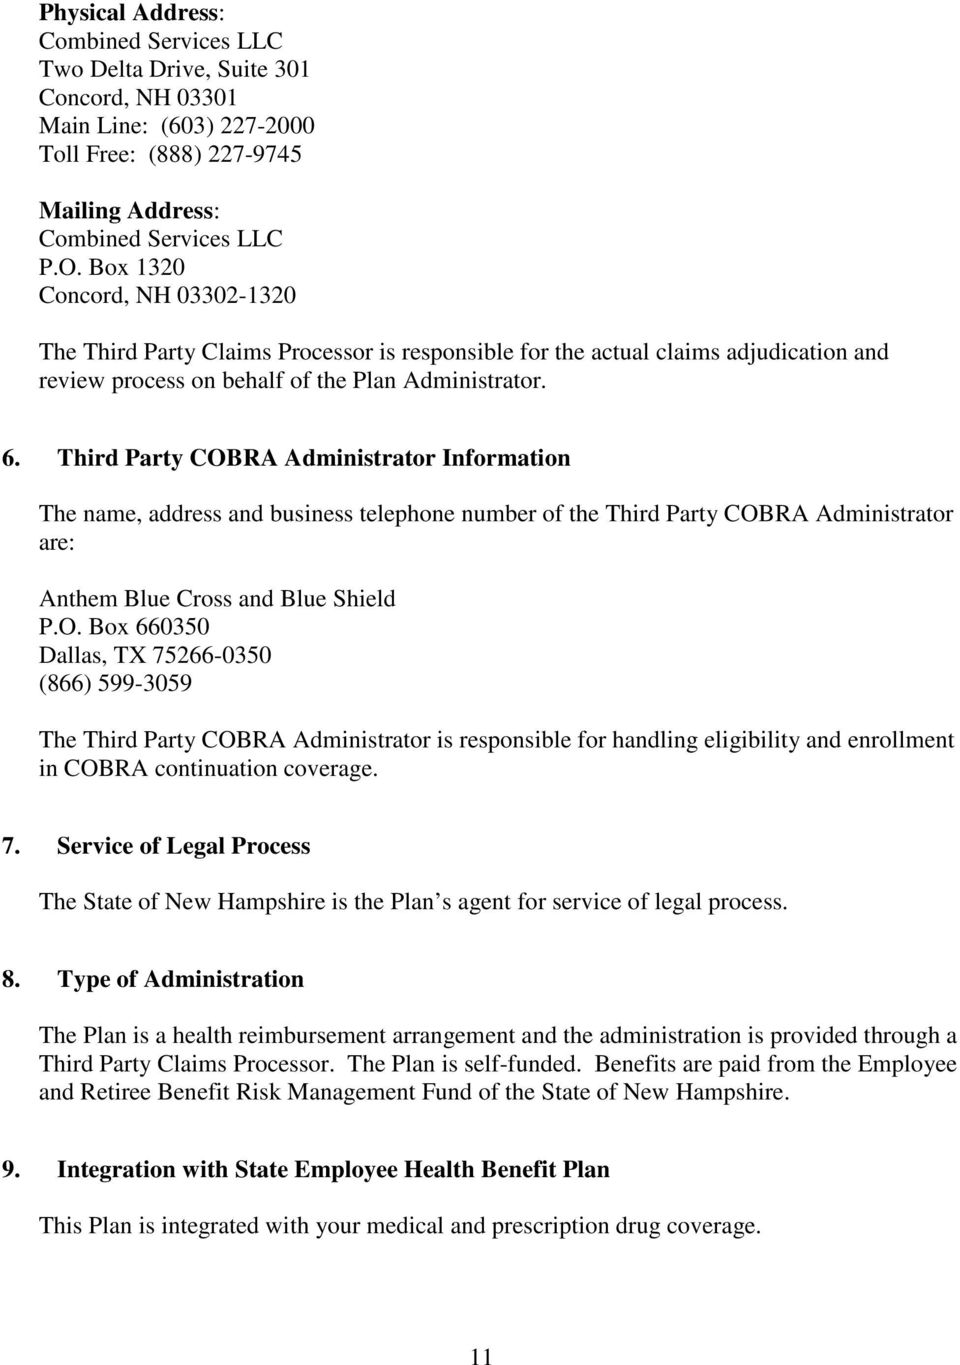 Third Party COBRA Administrator Information The name, address and business telephone number of the Third Party COBRA Administrator are: Anthem Blue Cross and Blue Shield P.O. Box 660350 Dallas, TX 75266-0350 (866) 599-3059 The Third Party COBRA Administrator is responsible for handling eligibility and enrollment in COBRA continuation coverage.